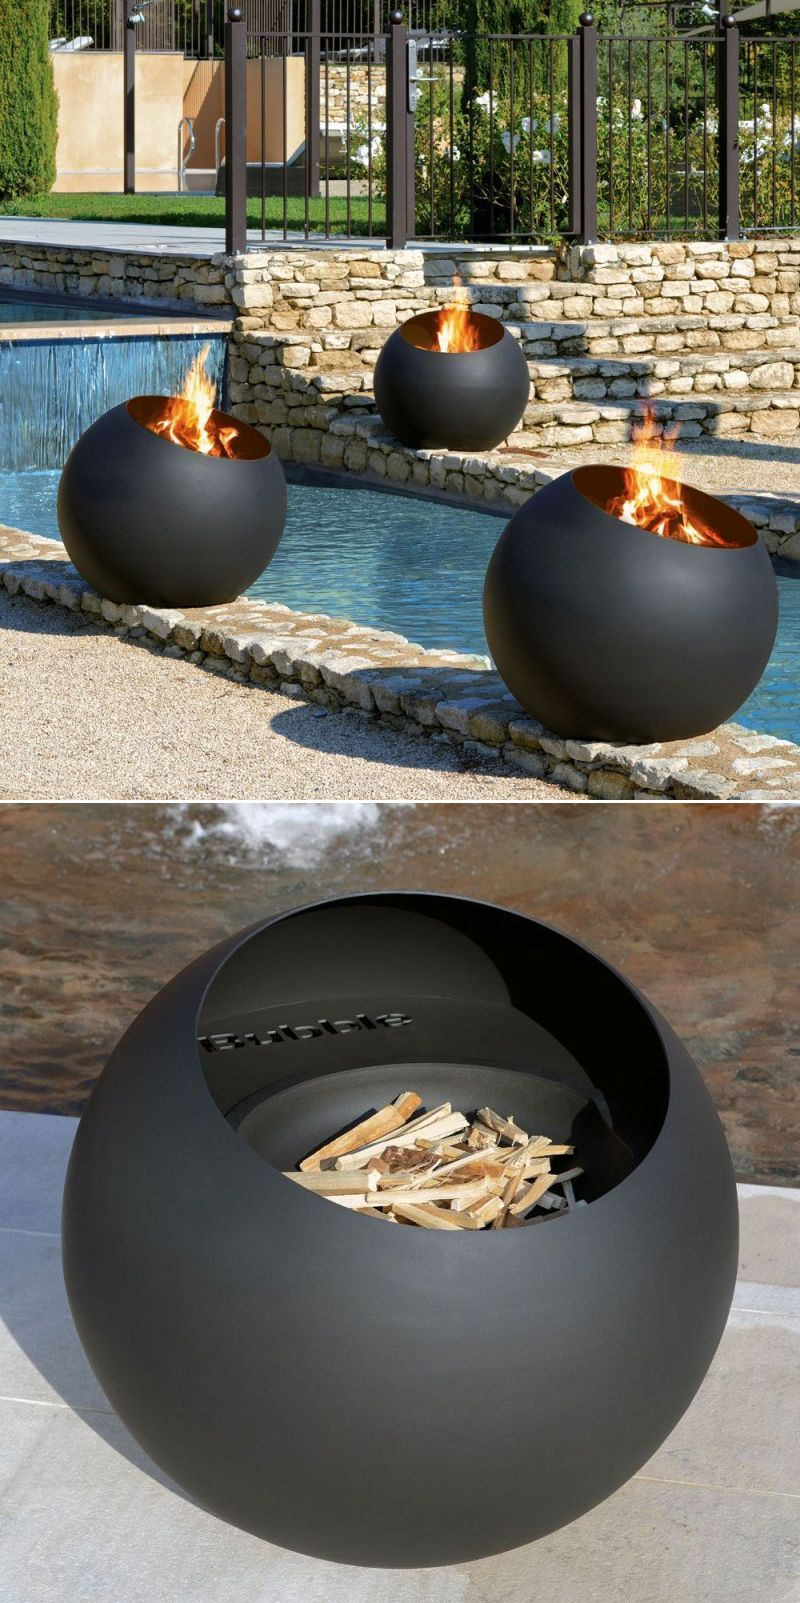 Pin On Outdoor Living And Camping